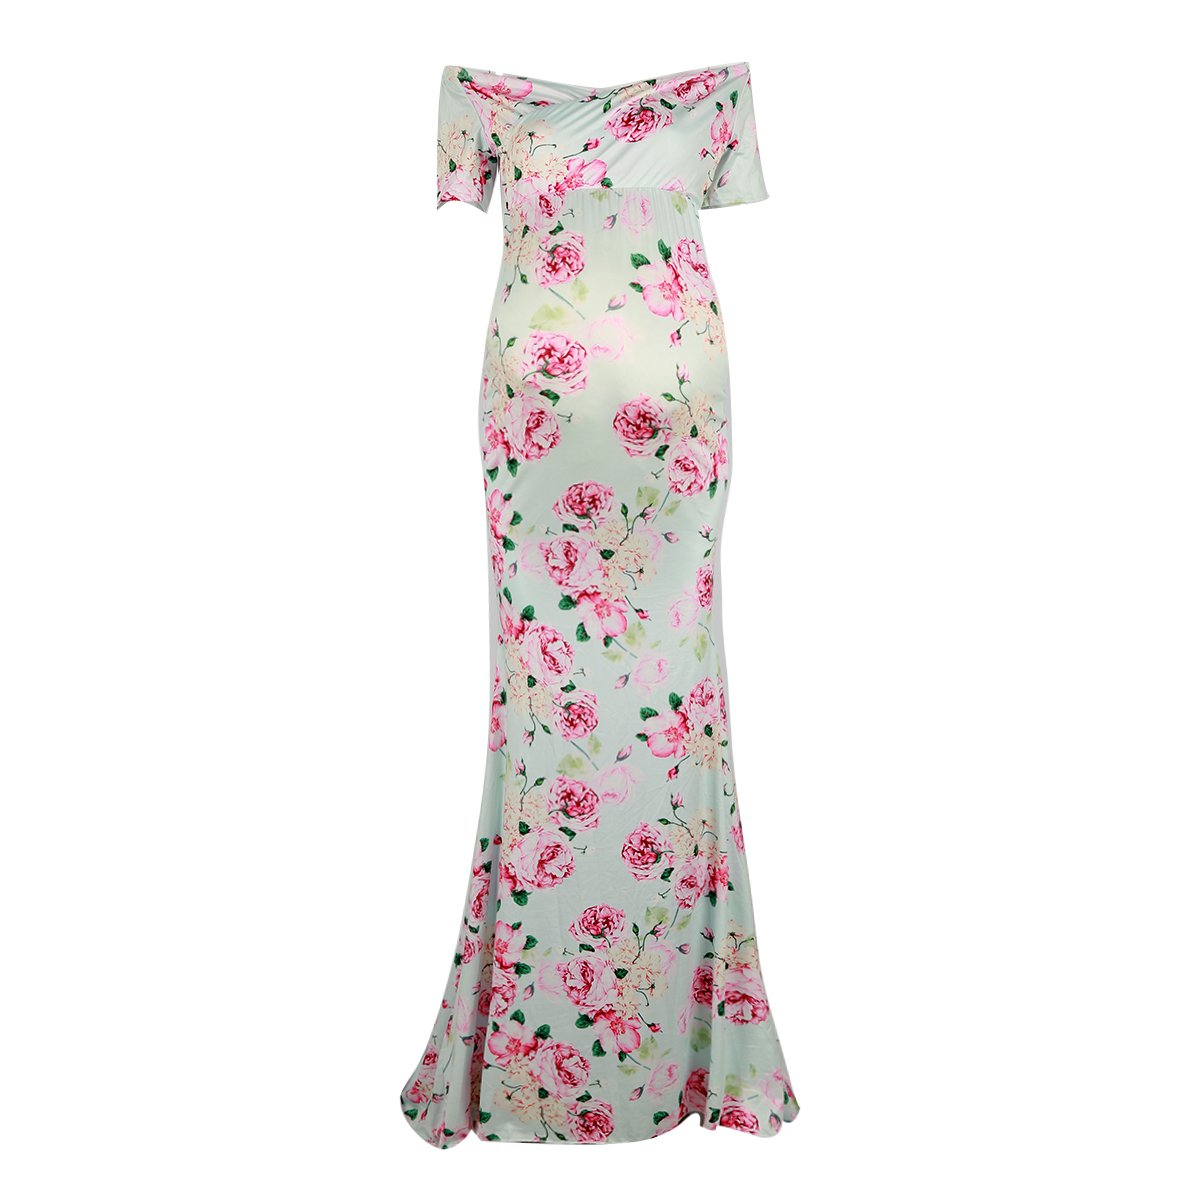 21a58abc473 Puseky Women Maternity Floral Off Shoulder Long Dress for Photoshoot  Photography  Amazon.co.uk  Clothing